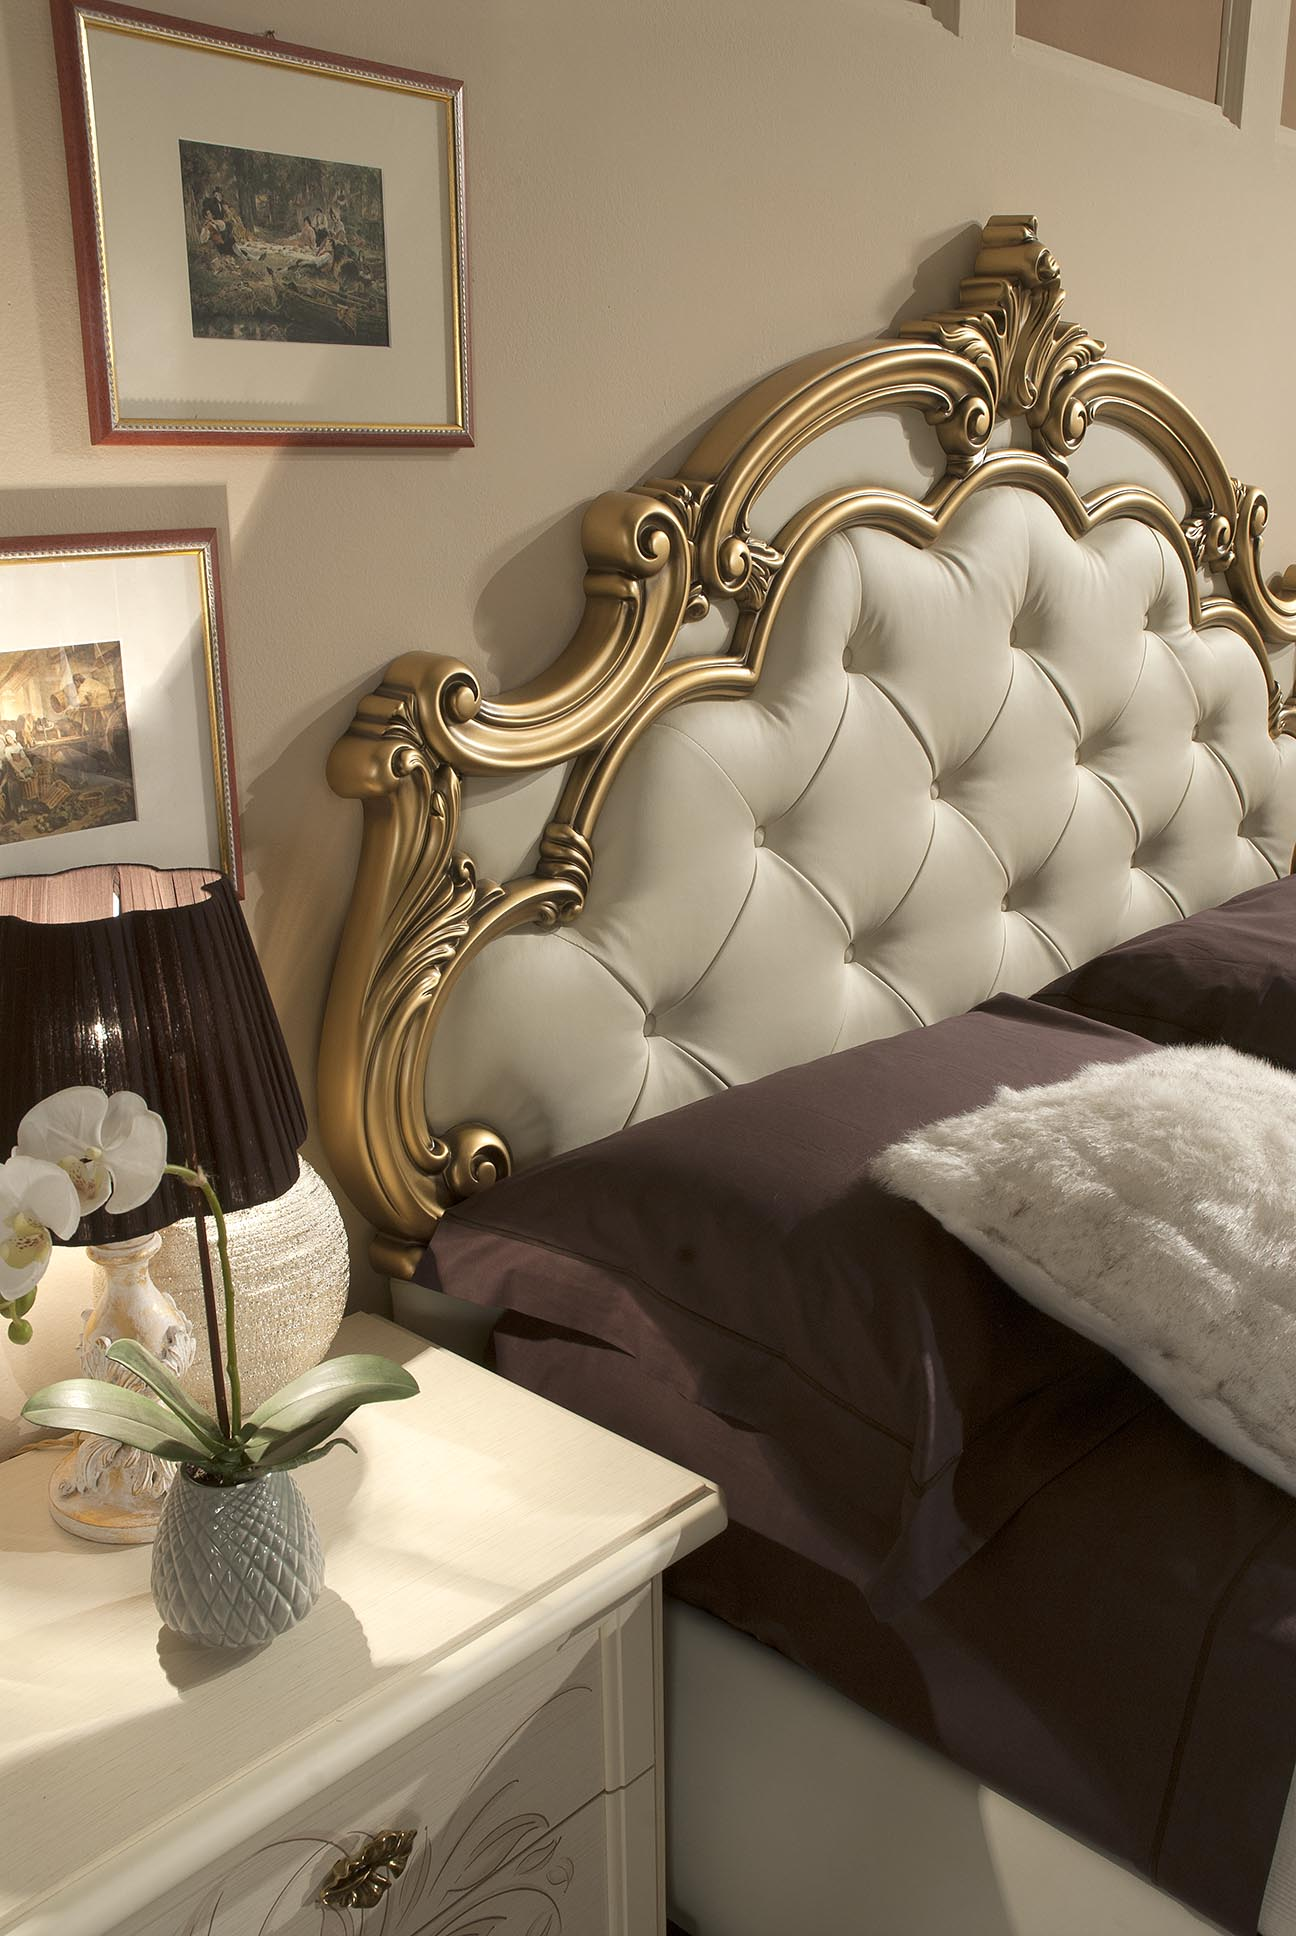 bett silvia mit stauraum in beige gold luxus design. Black Bedroom Furniture Sets. Home Design Ideas